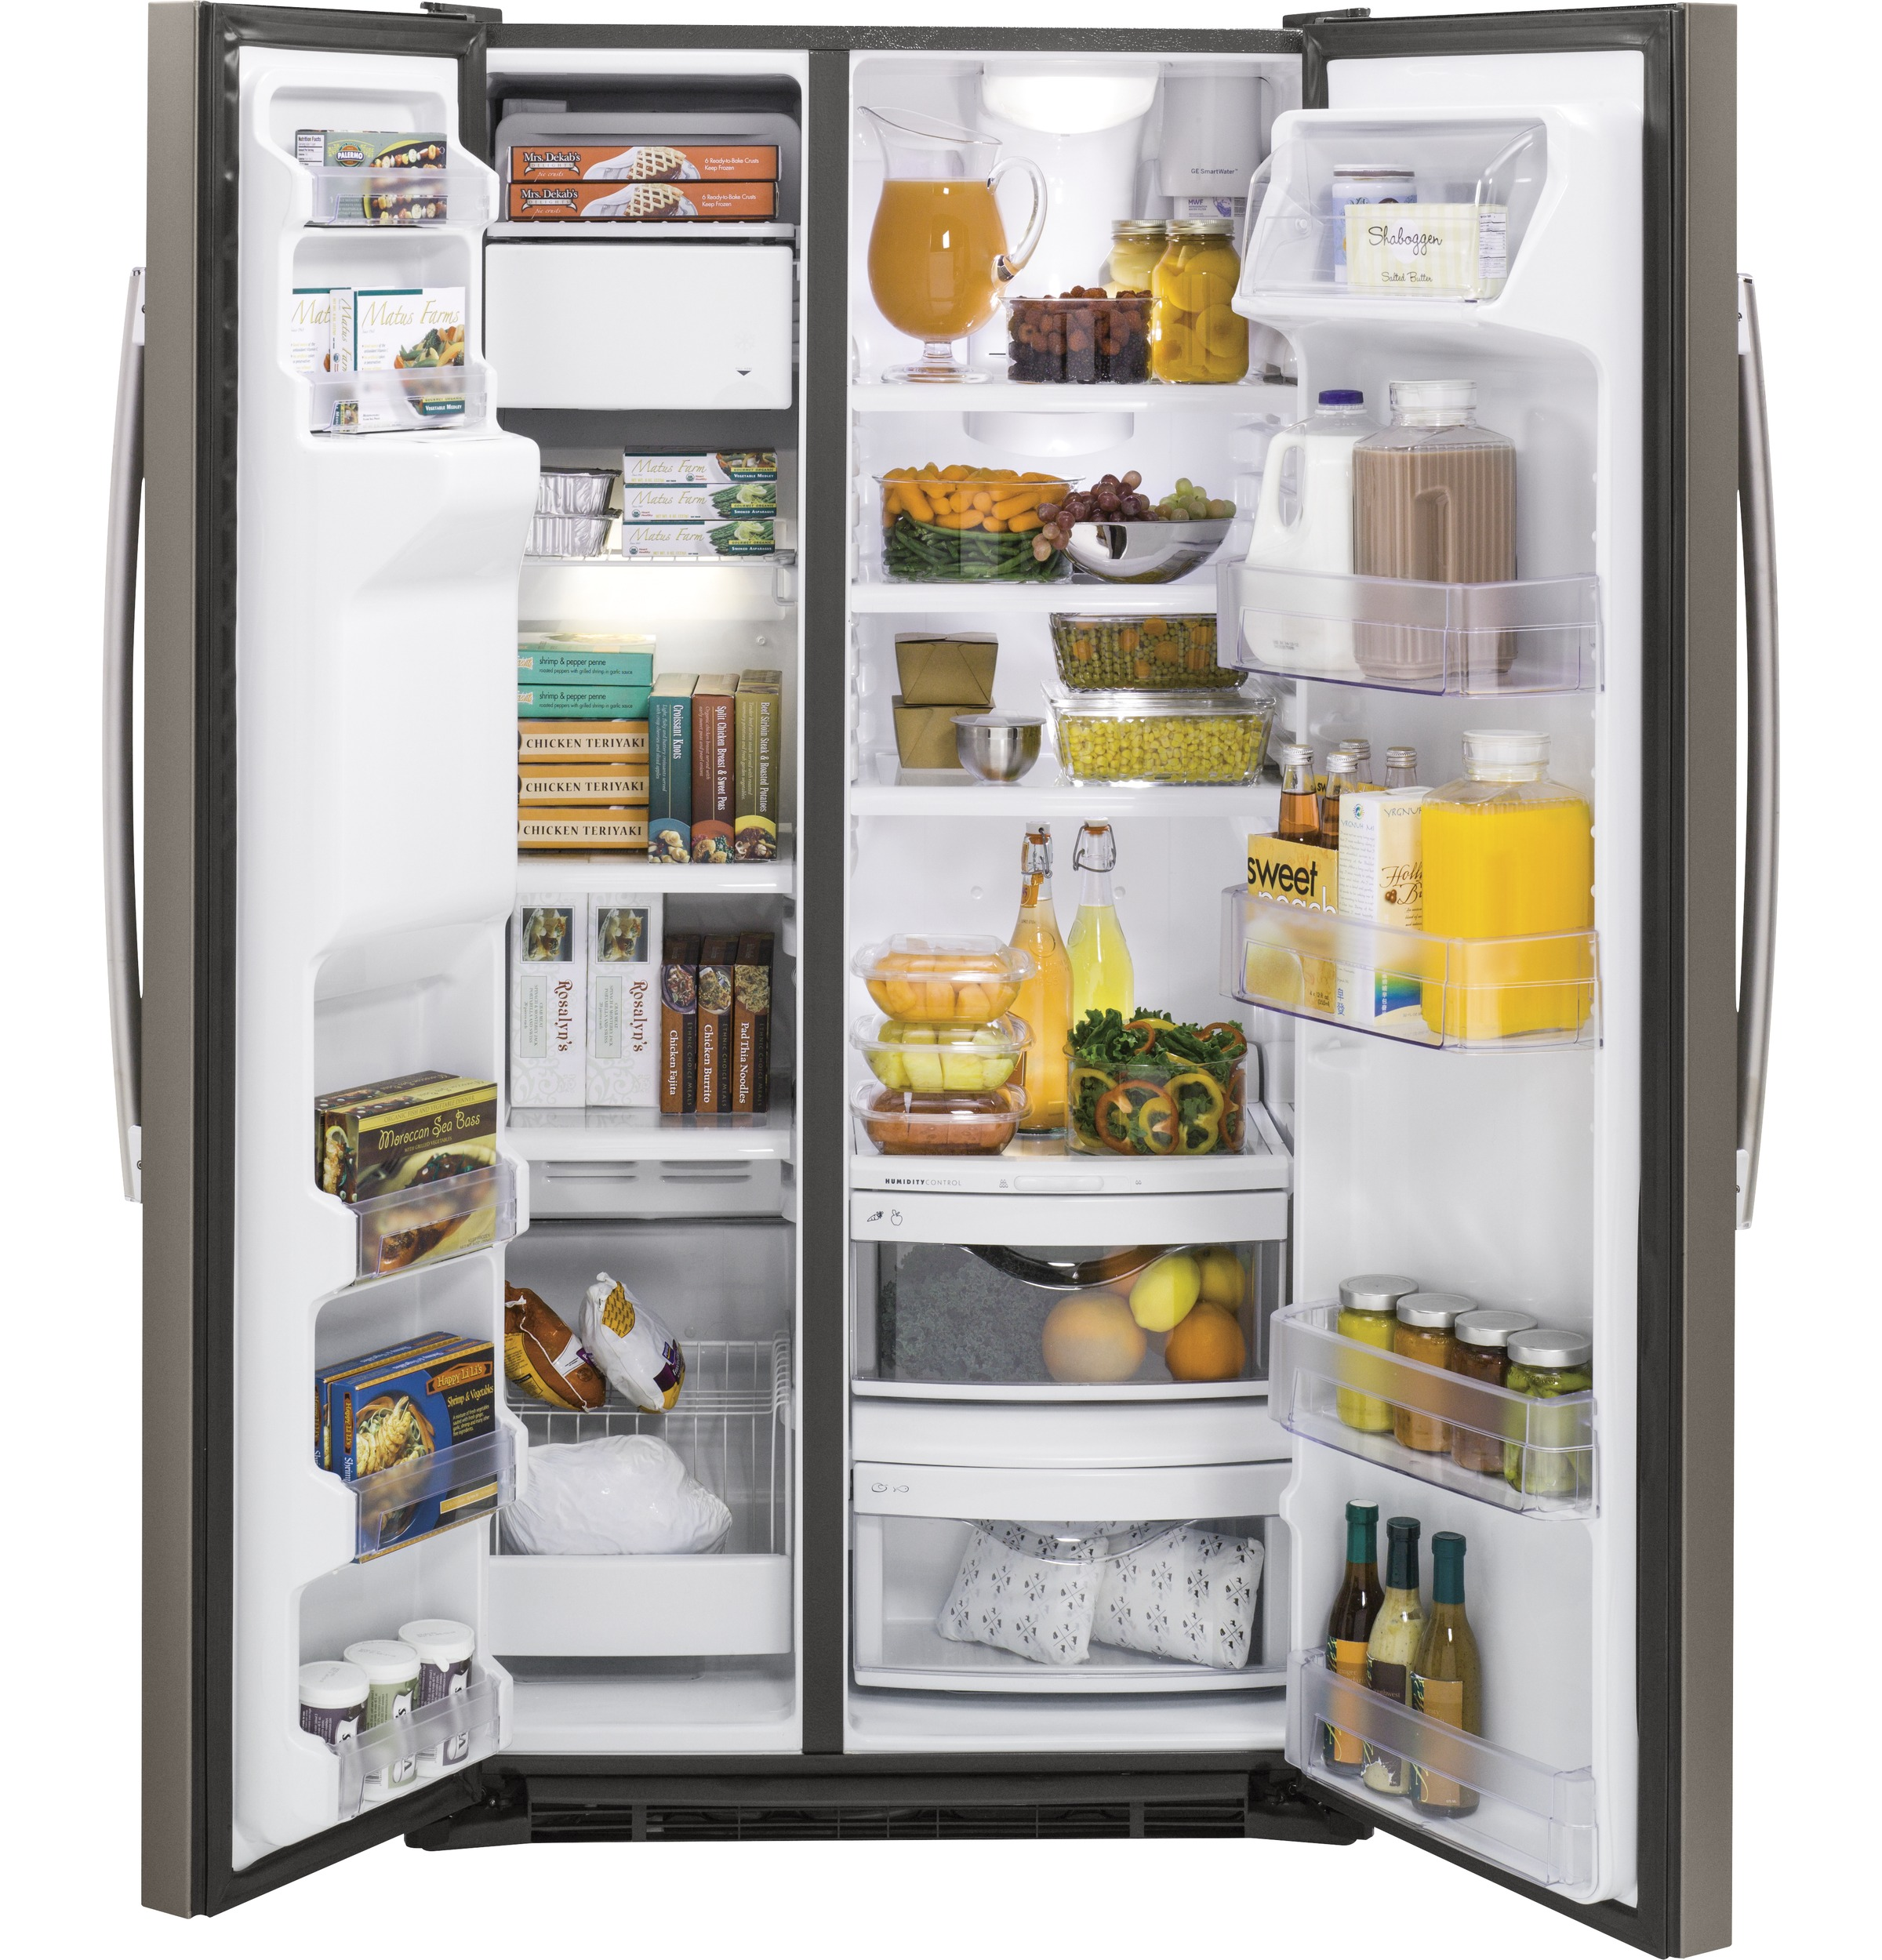 Model: GZS22DMJES | GE® 21.9 Cu. Ft. Counter-Depth Side-By-Side Refrigerator